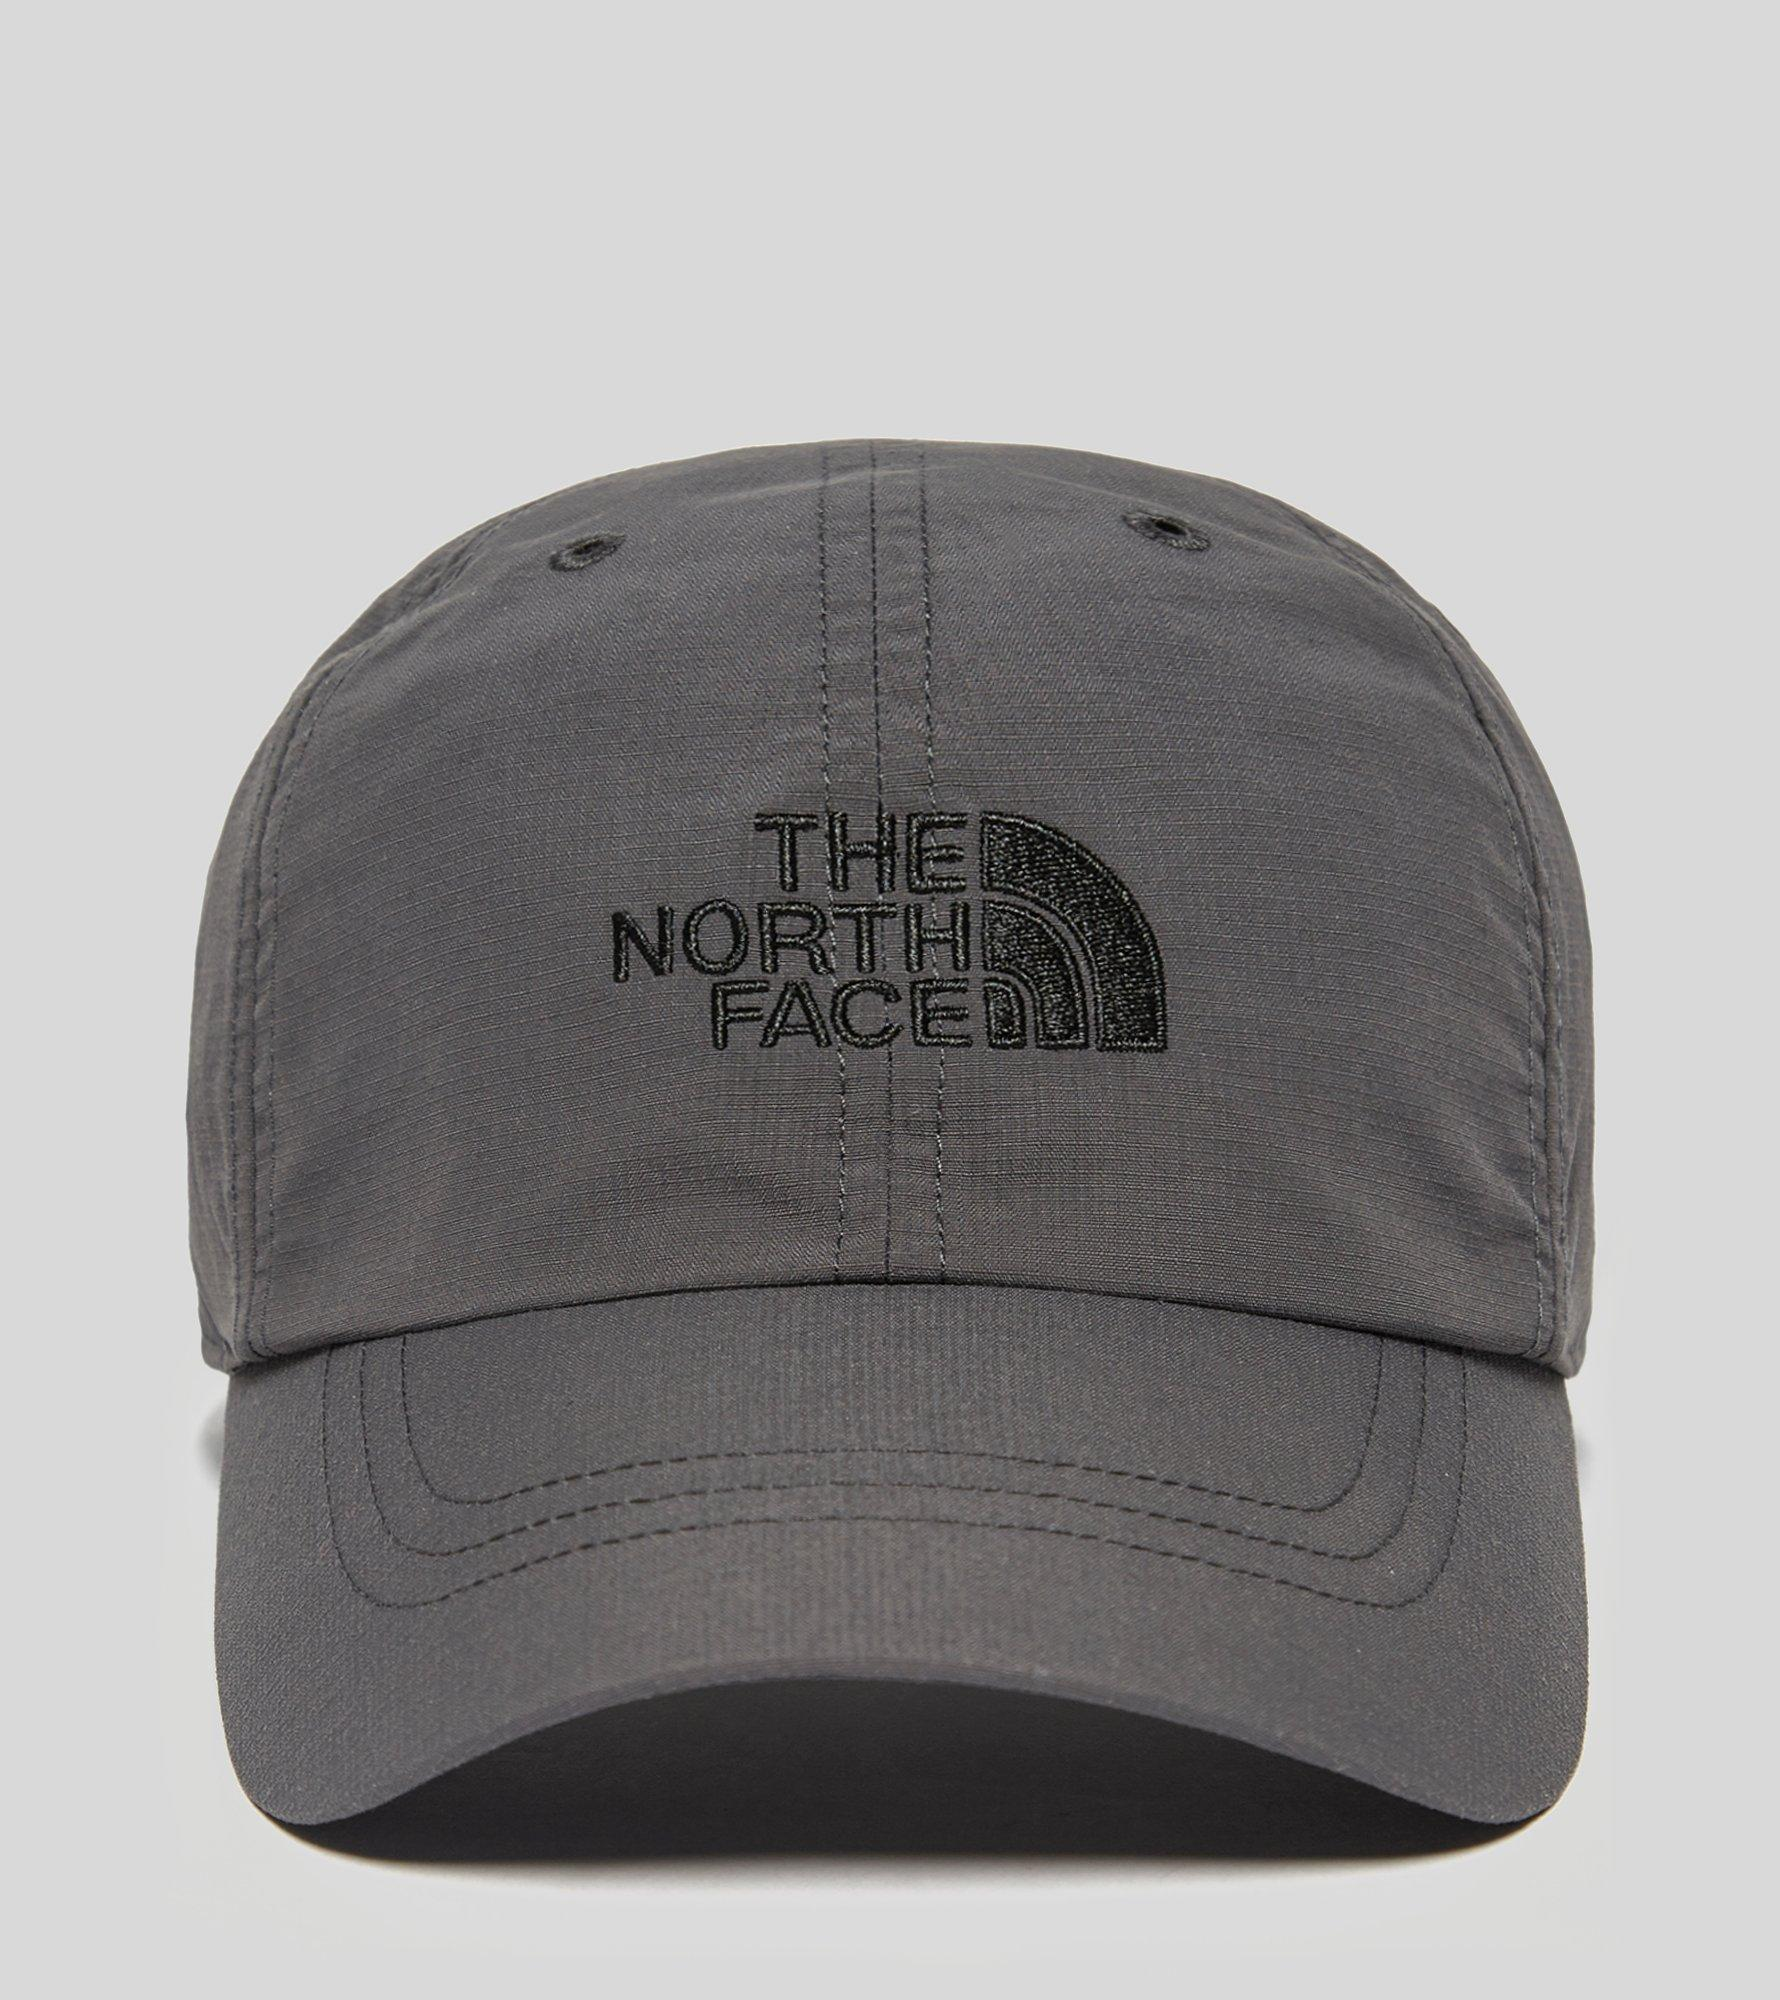 The North Face Horizon Ball Cap in Gray for Men - Lyst 0a25cbc09c12